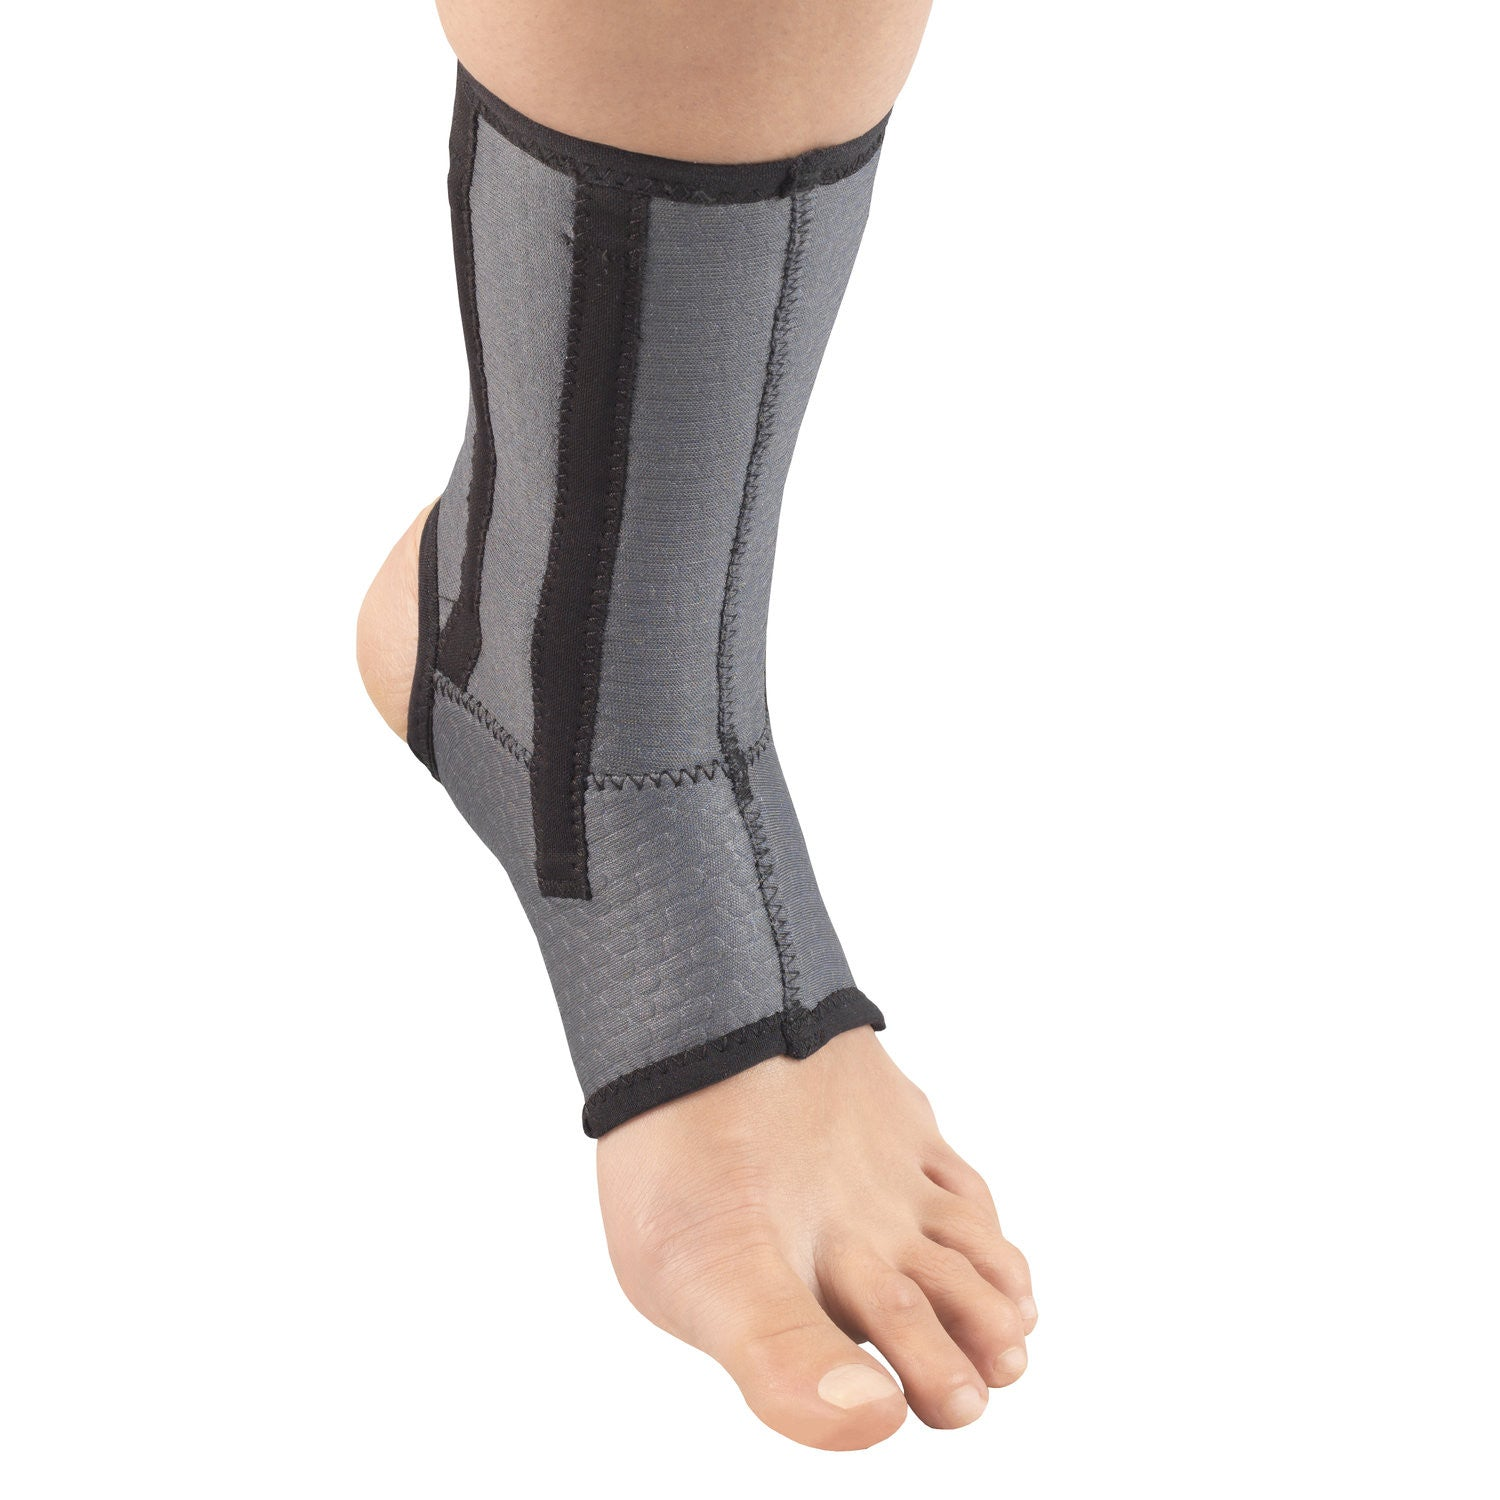 AIRMESH ANKLE SUPPORT WITH FLEXIBLE STAYS